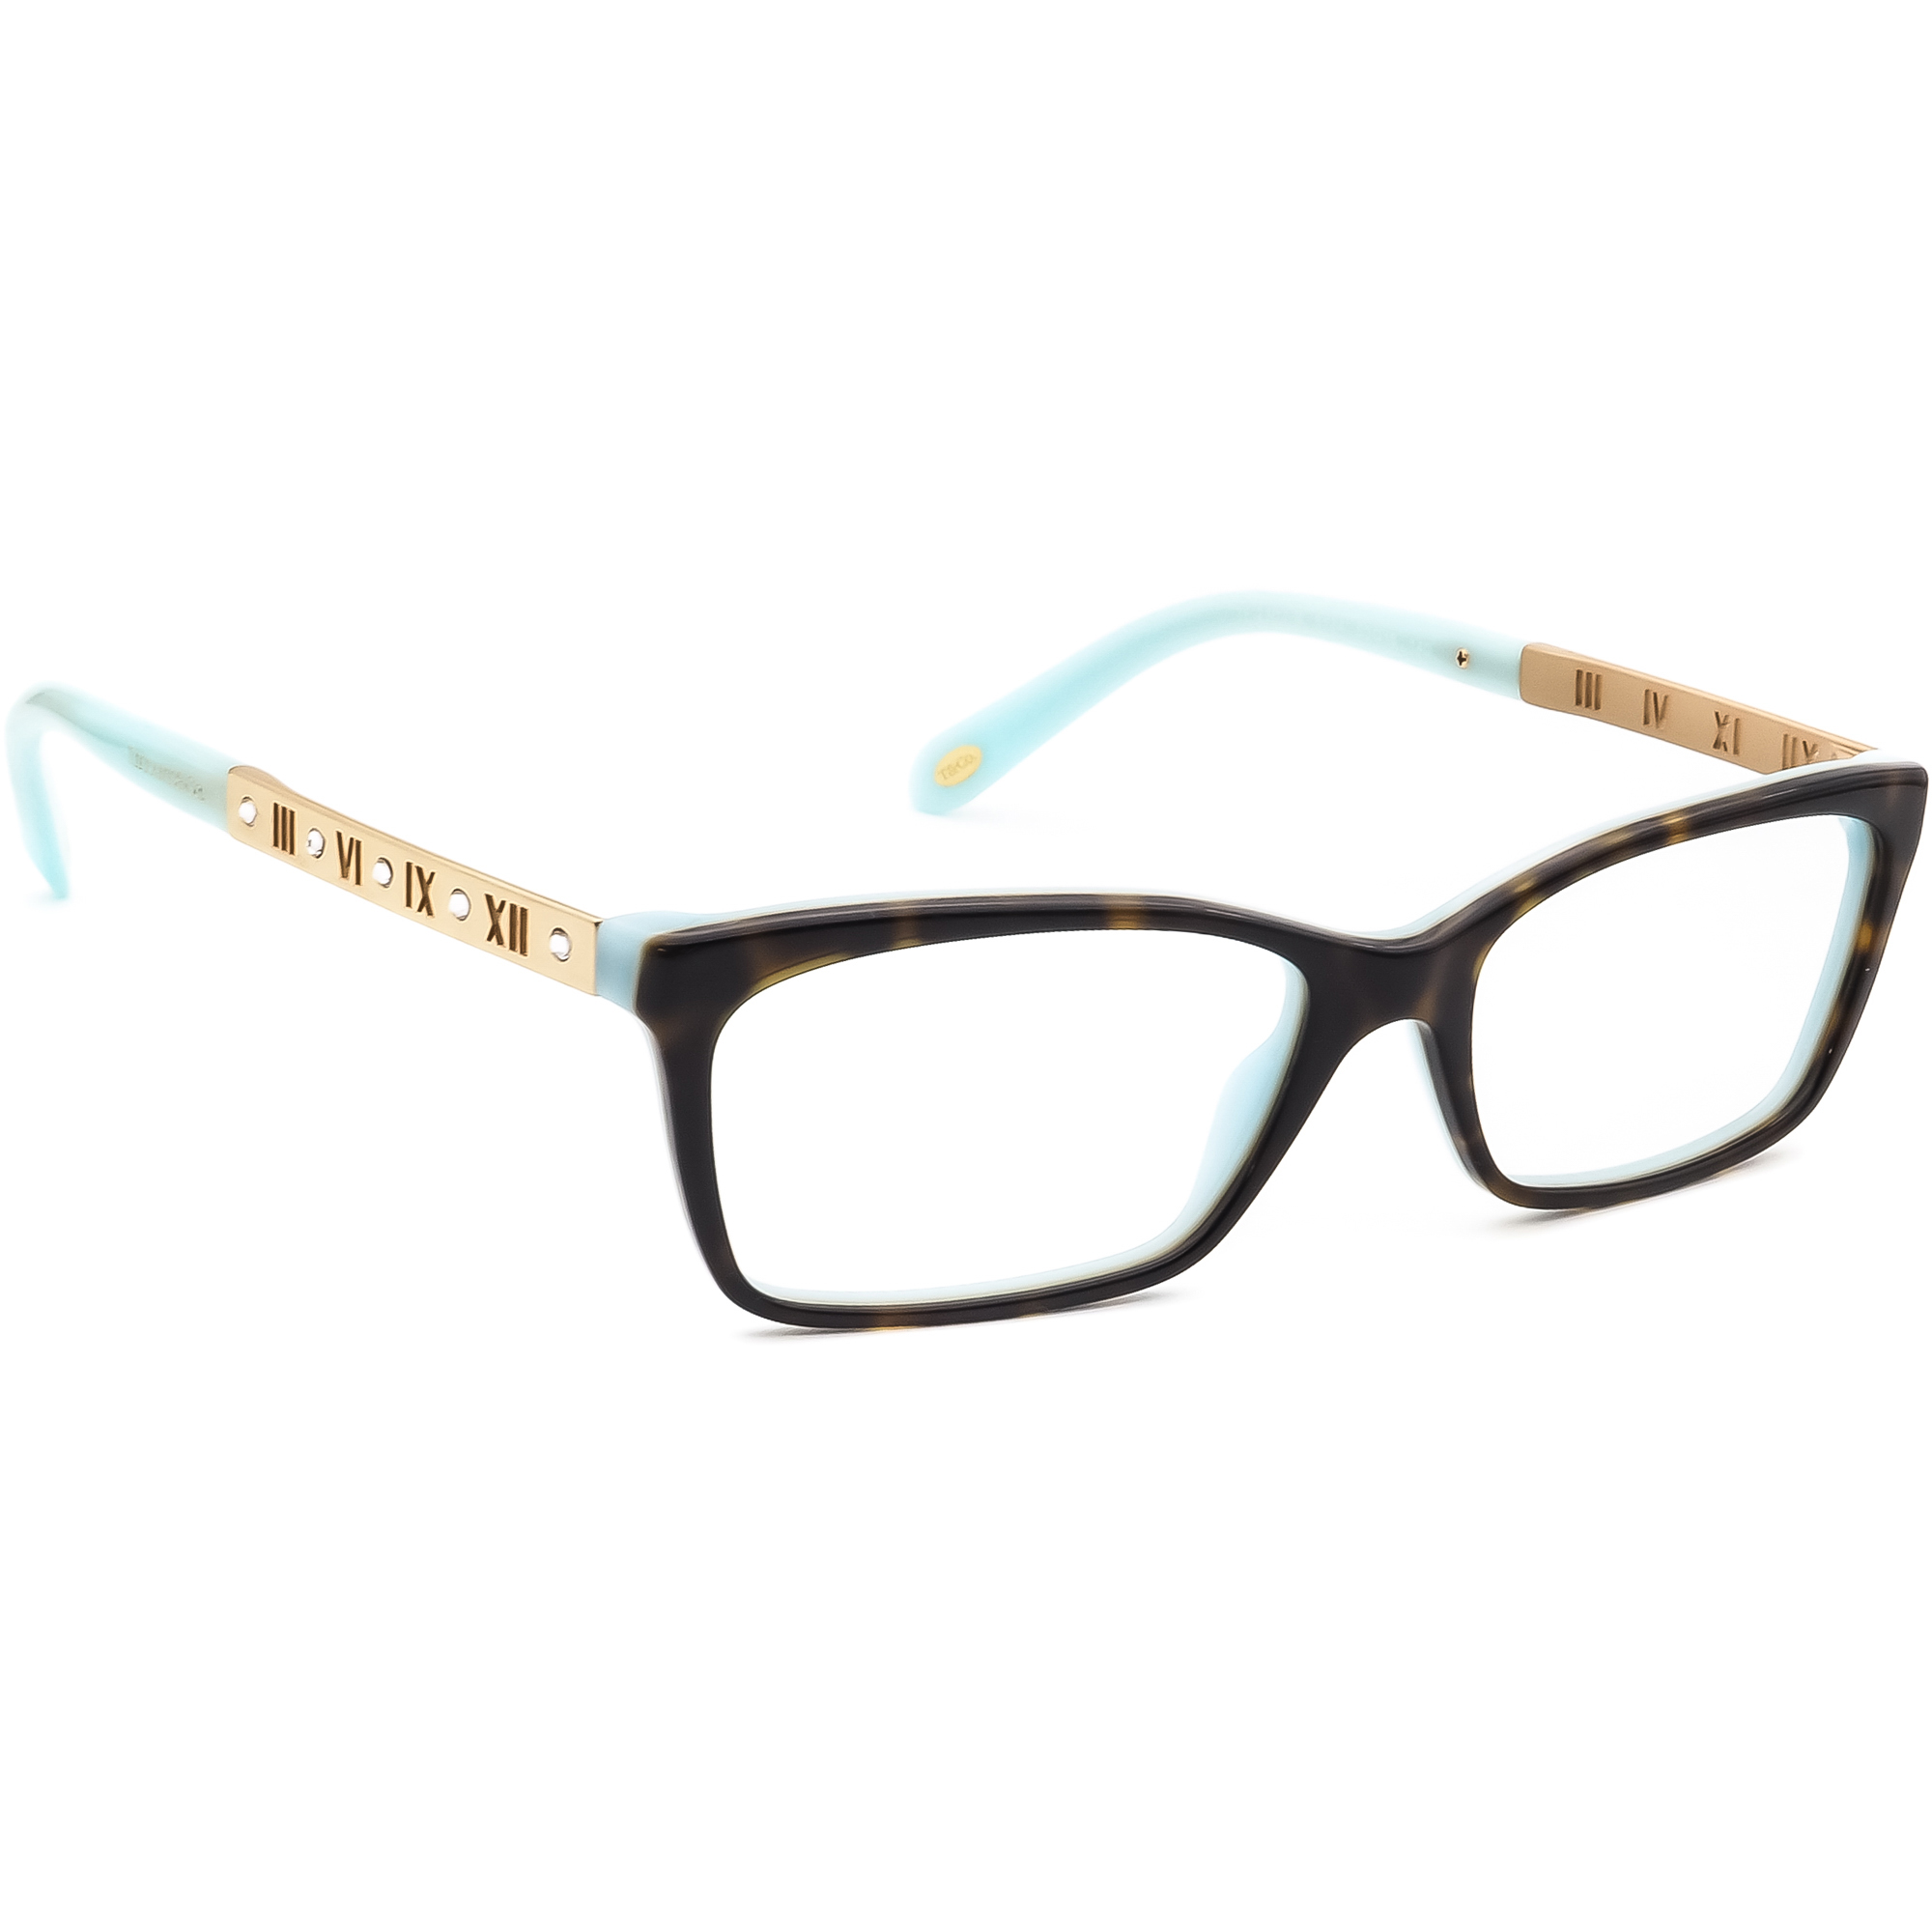 Tiffany & Co. TF 2103-B 8134 Eyeglasses